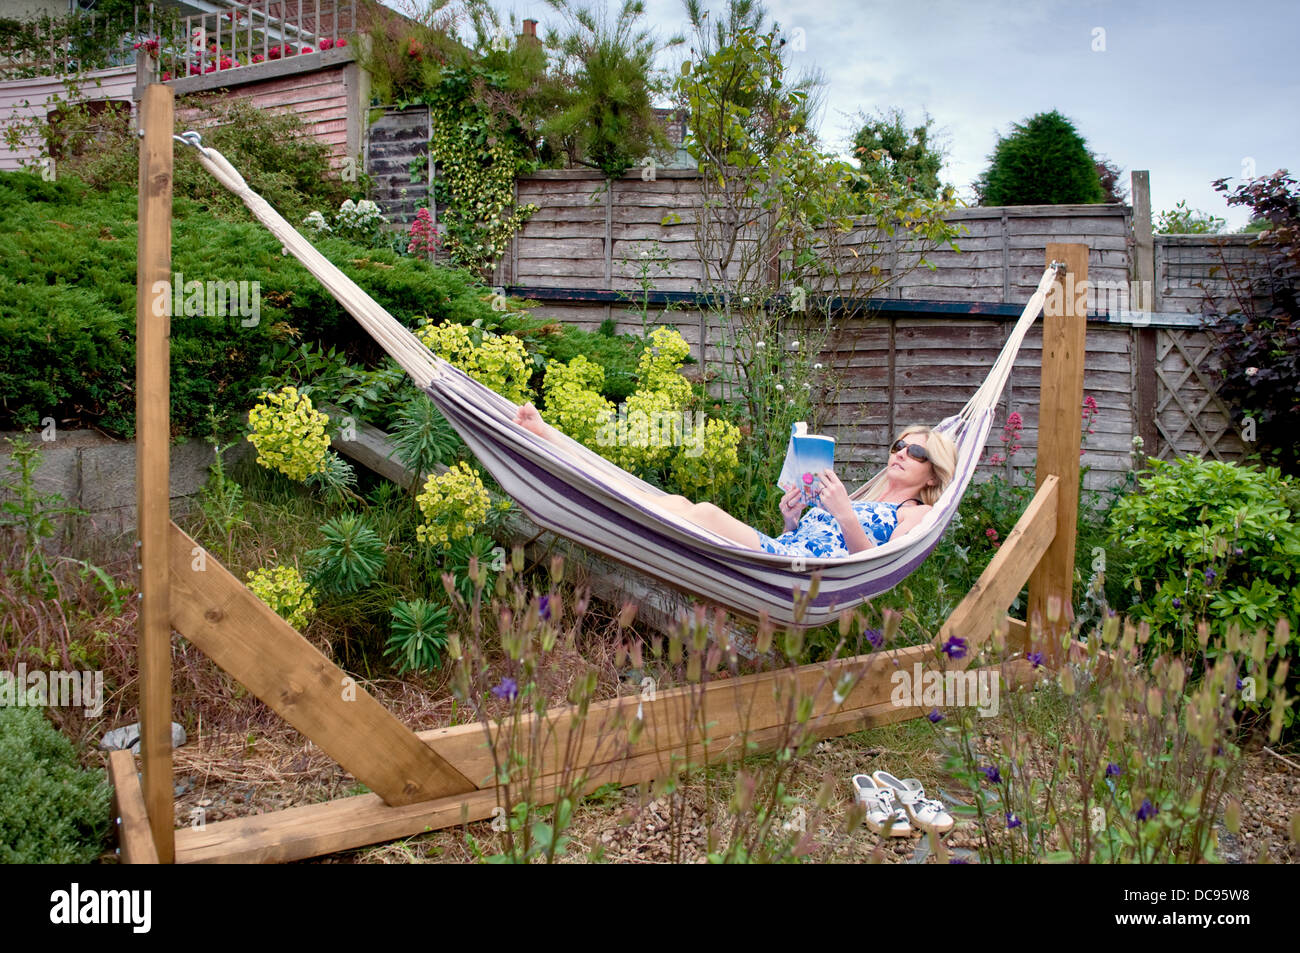 Attractive Caucasian woman in hammock in garden relaxing reading a book - Stock Image